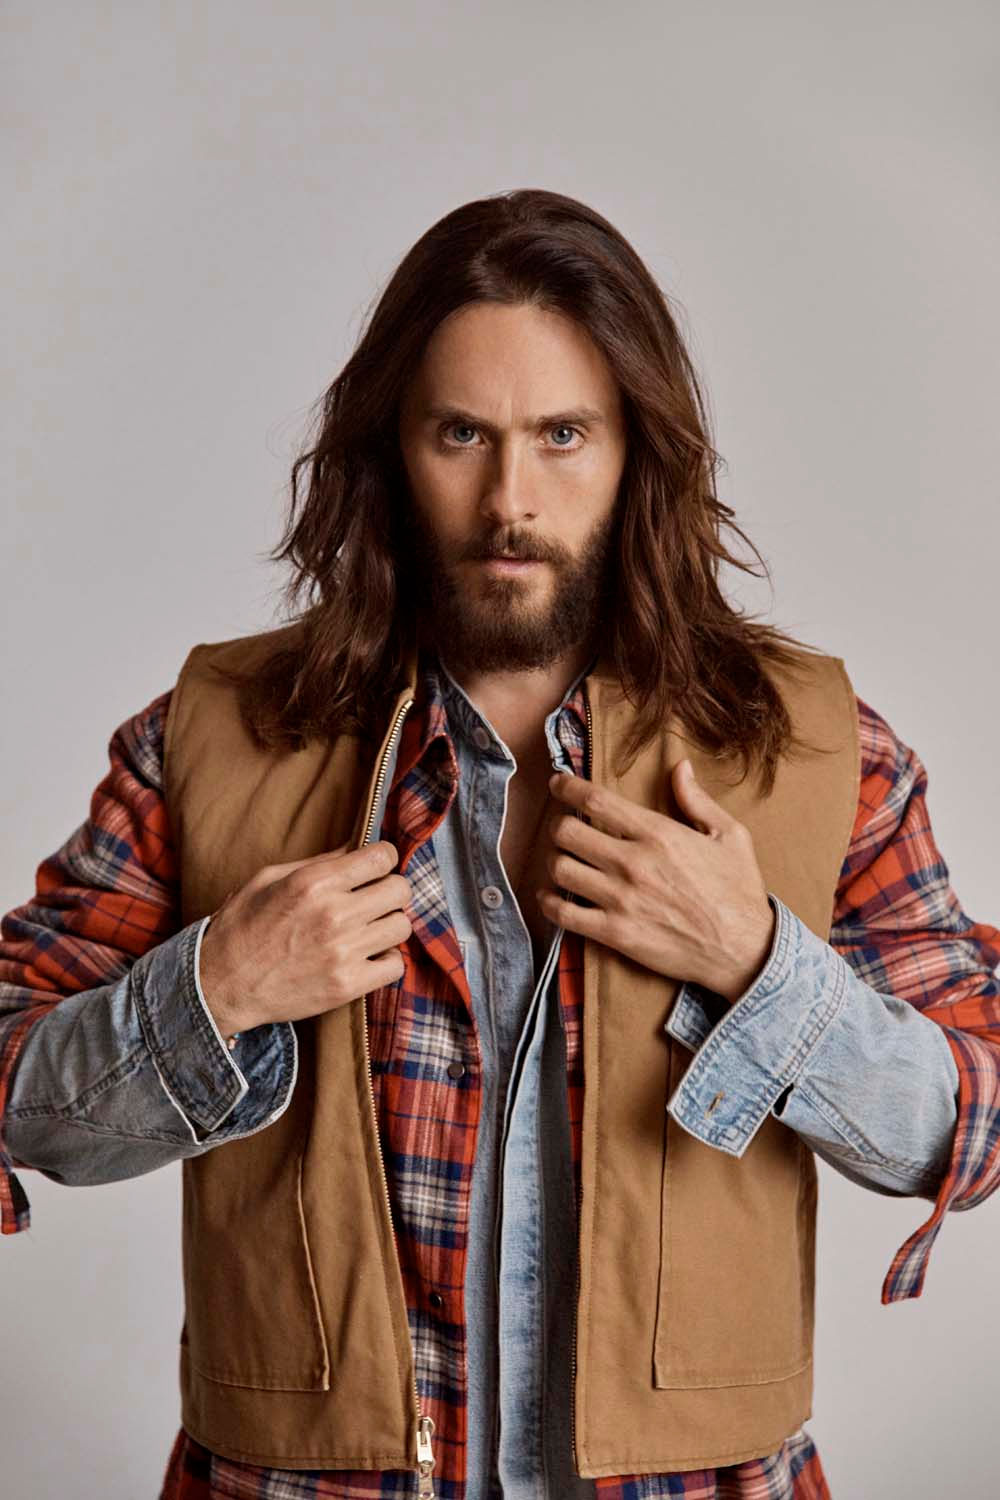 https_%2F%2Fhypebeast.com%2Fimage%2F2018%2F09%2Ffear-of-god-6-sixth-collection-jared-leto-nike-11.jpg